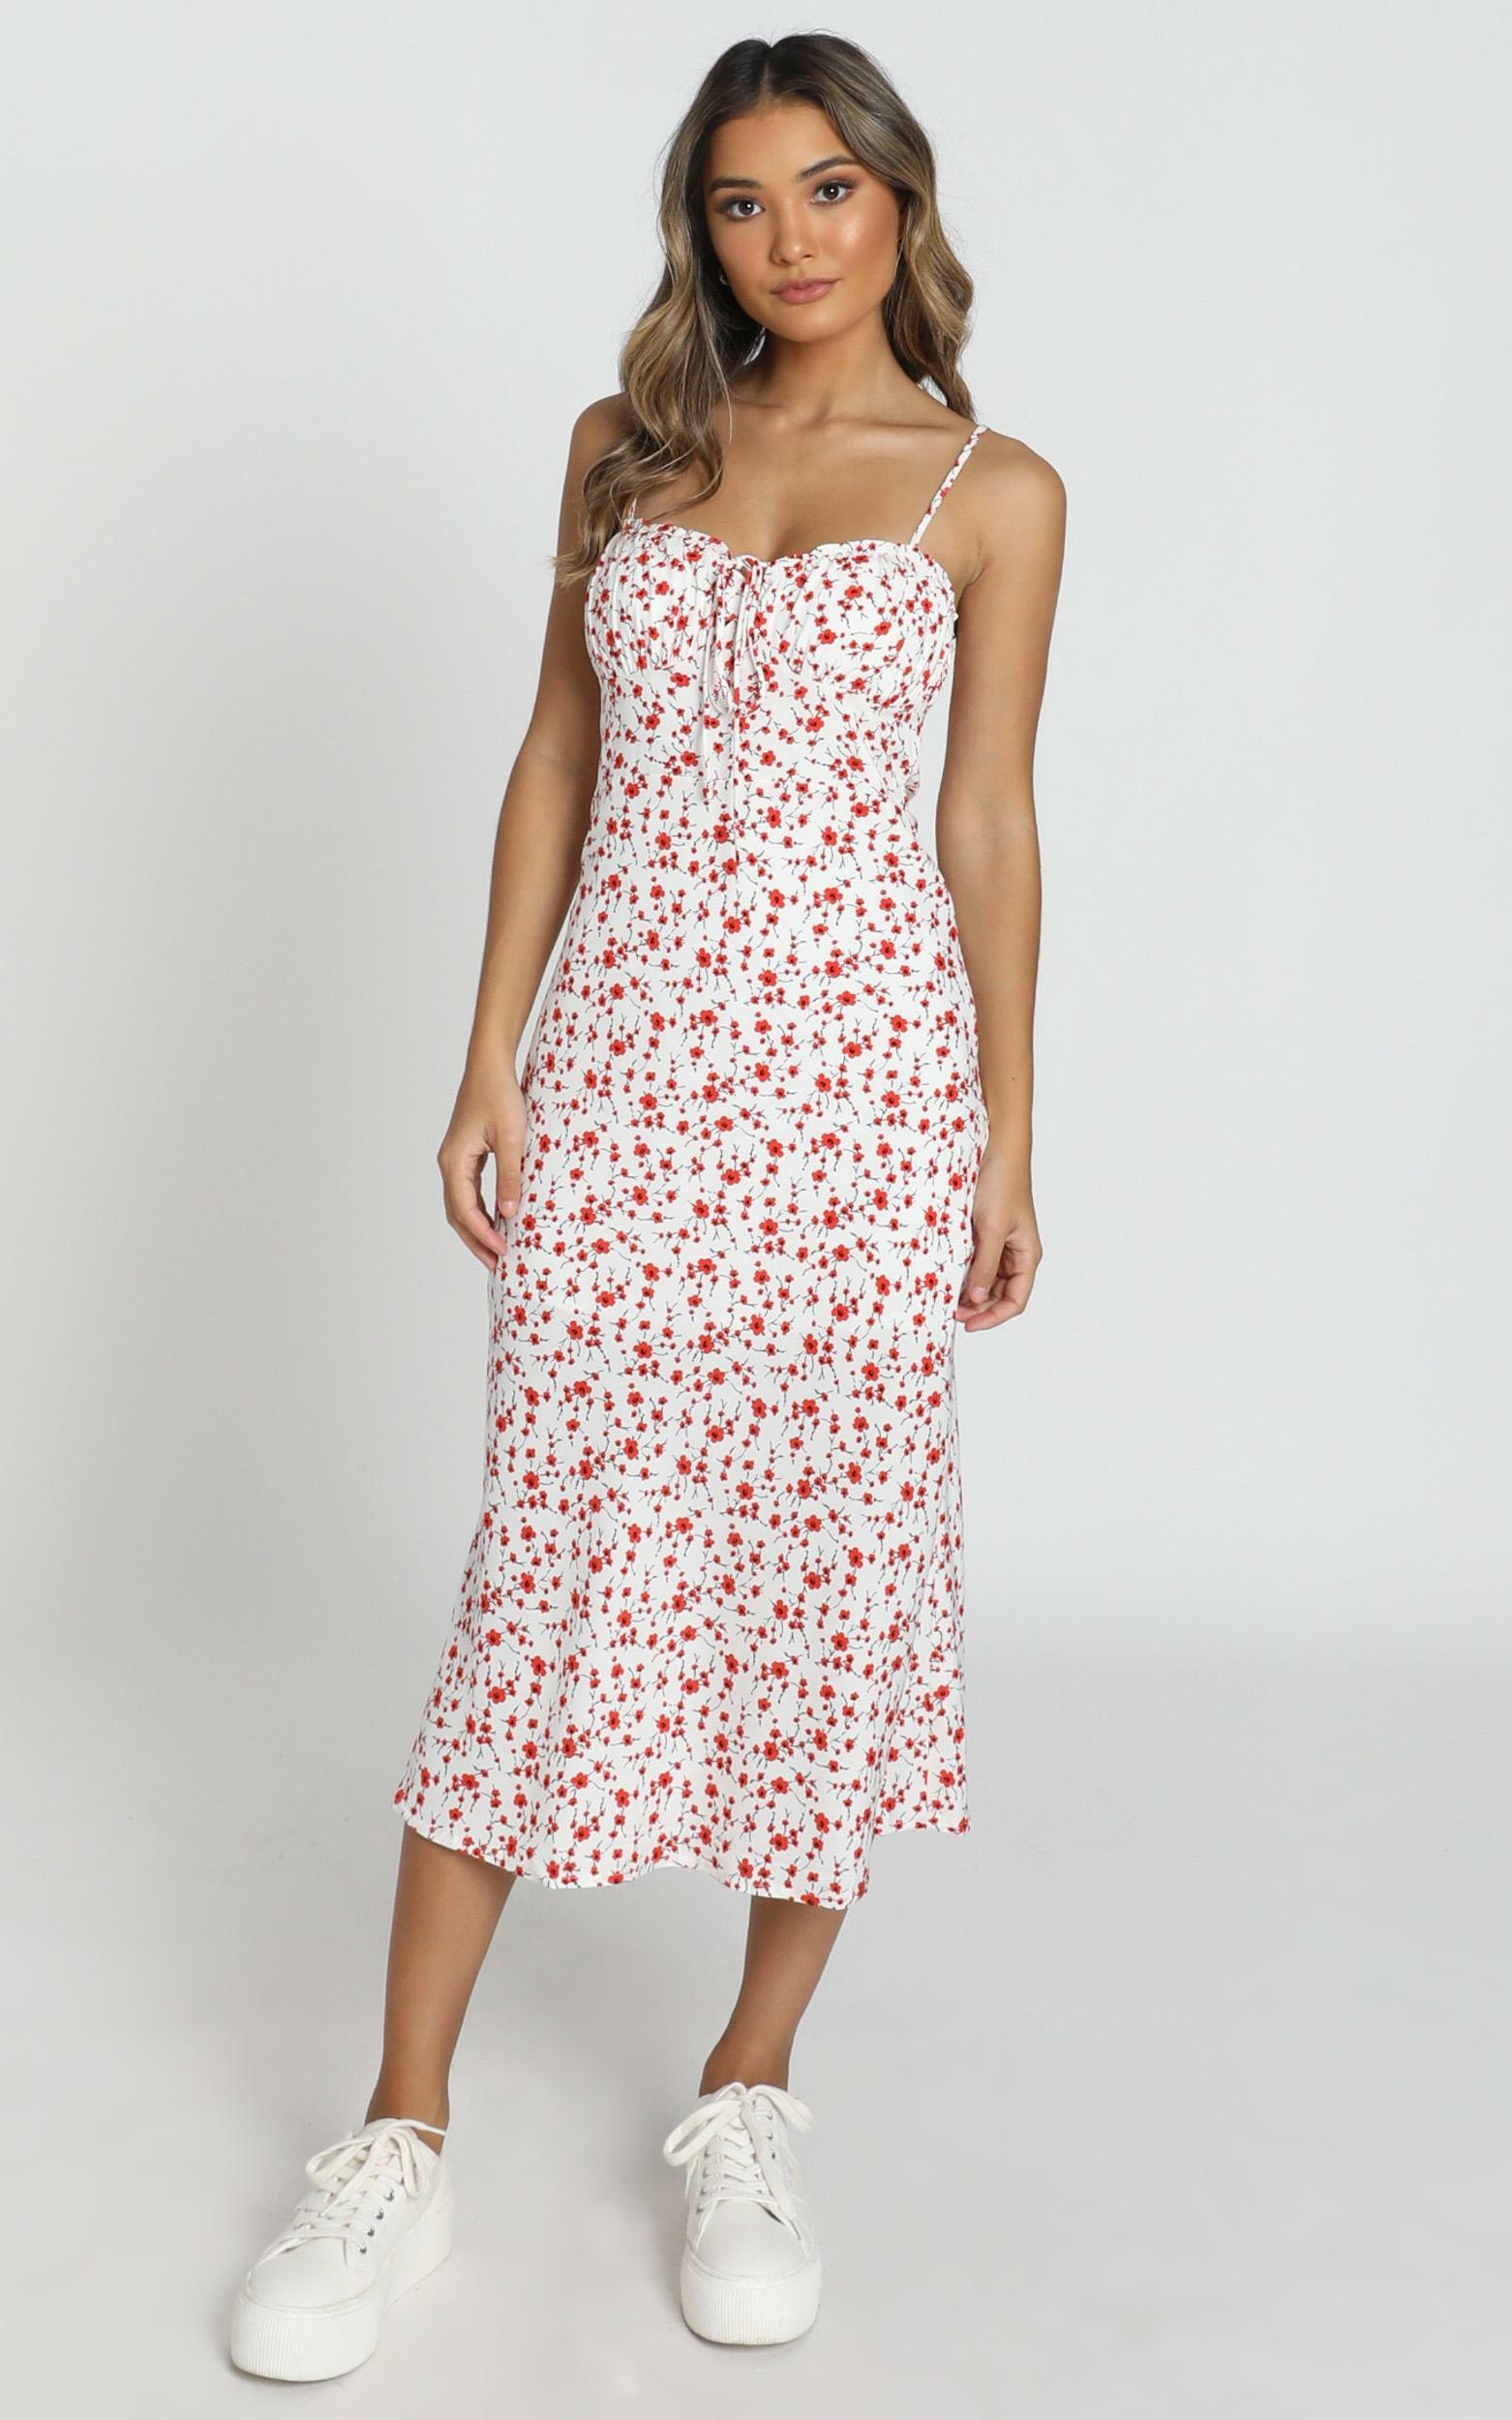 Rushing Back Dress in Red Floral - 06, RED1, hi-res image number null